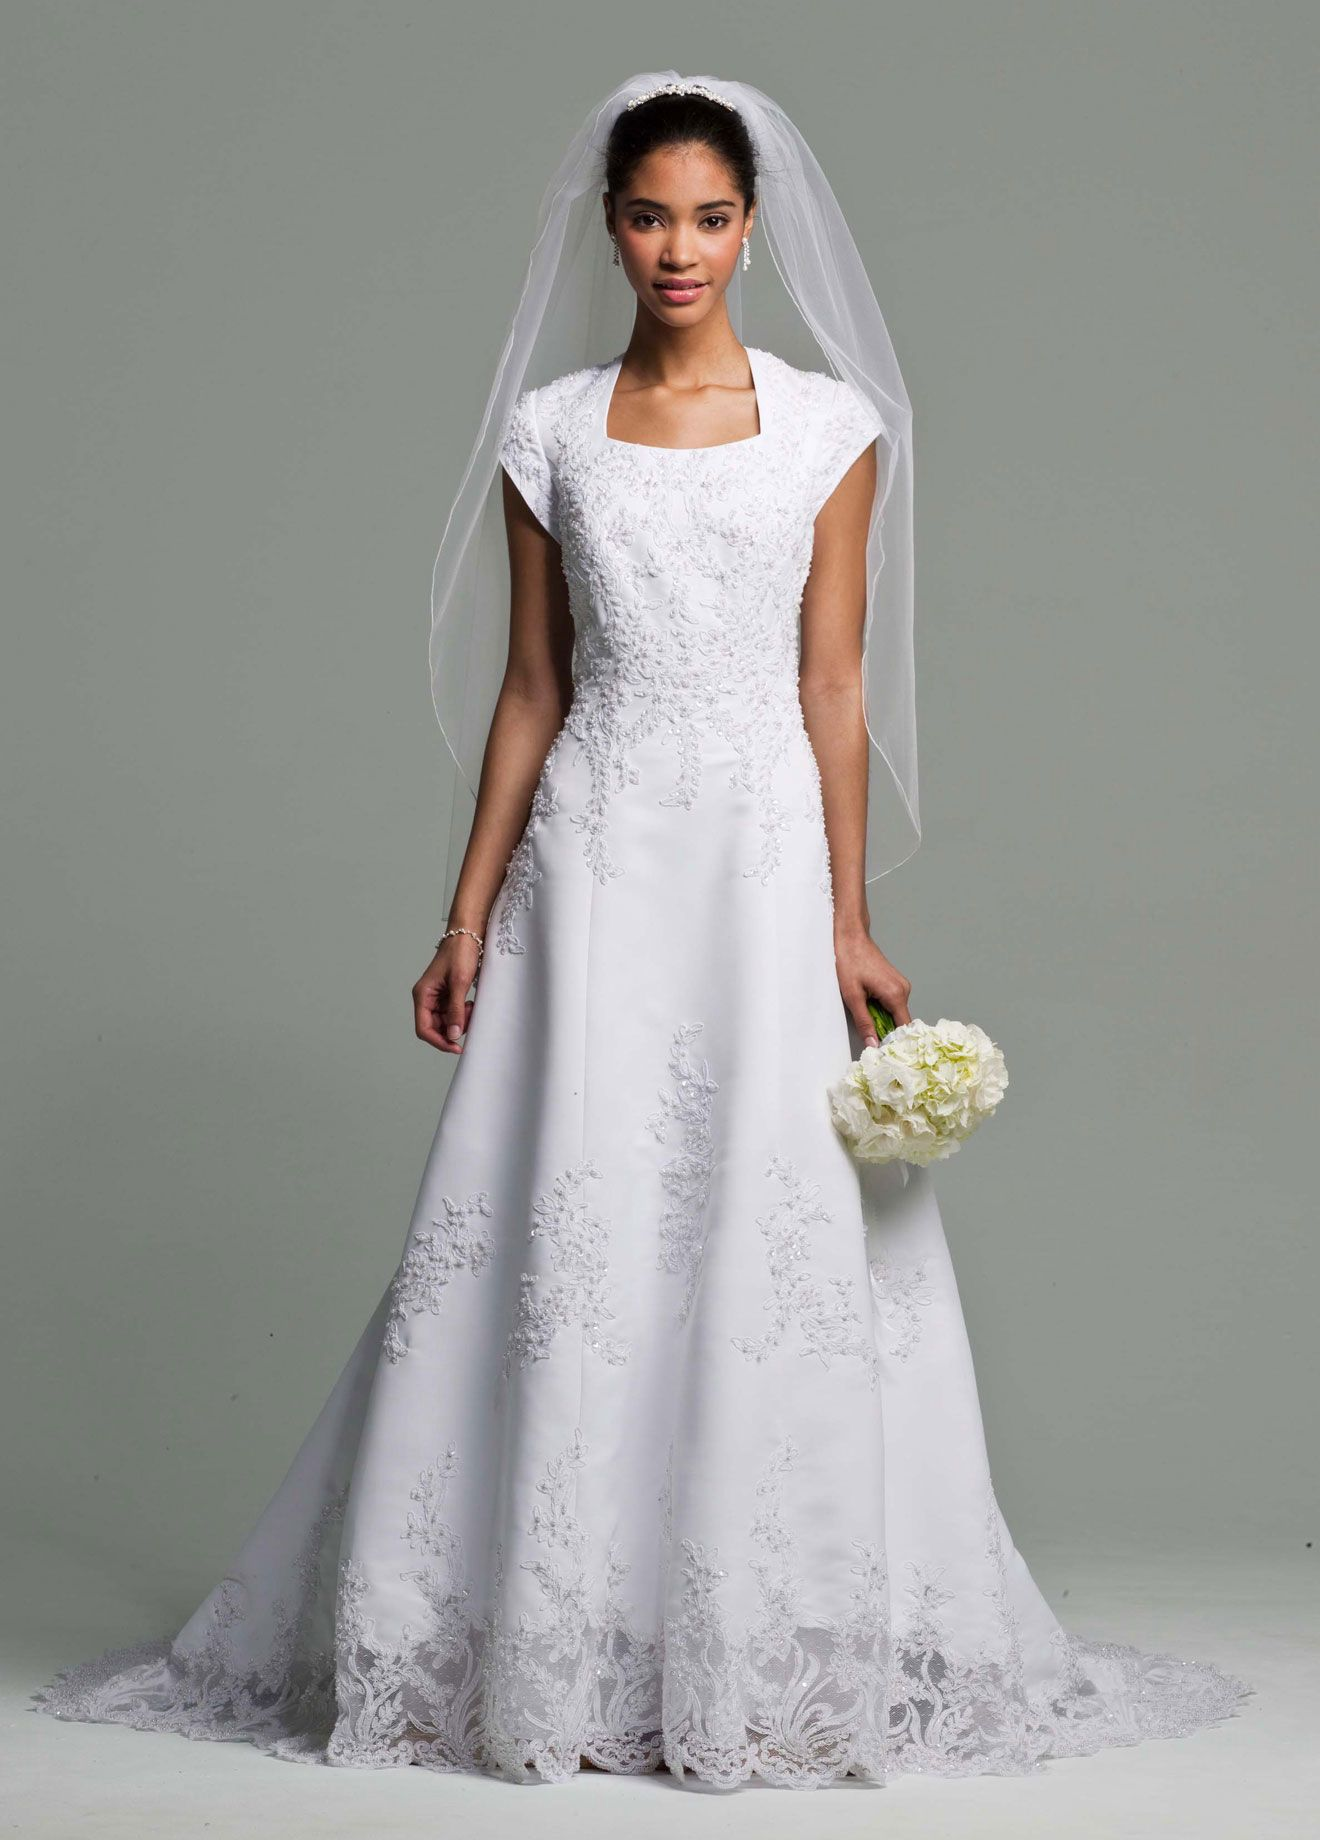 top wedding dresses under 100 dollars to inspire you